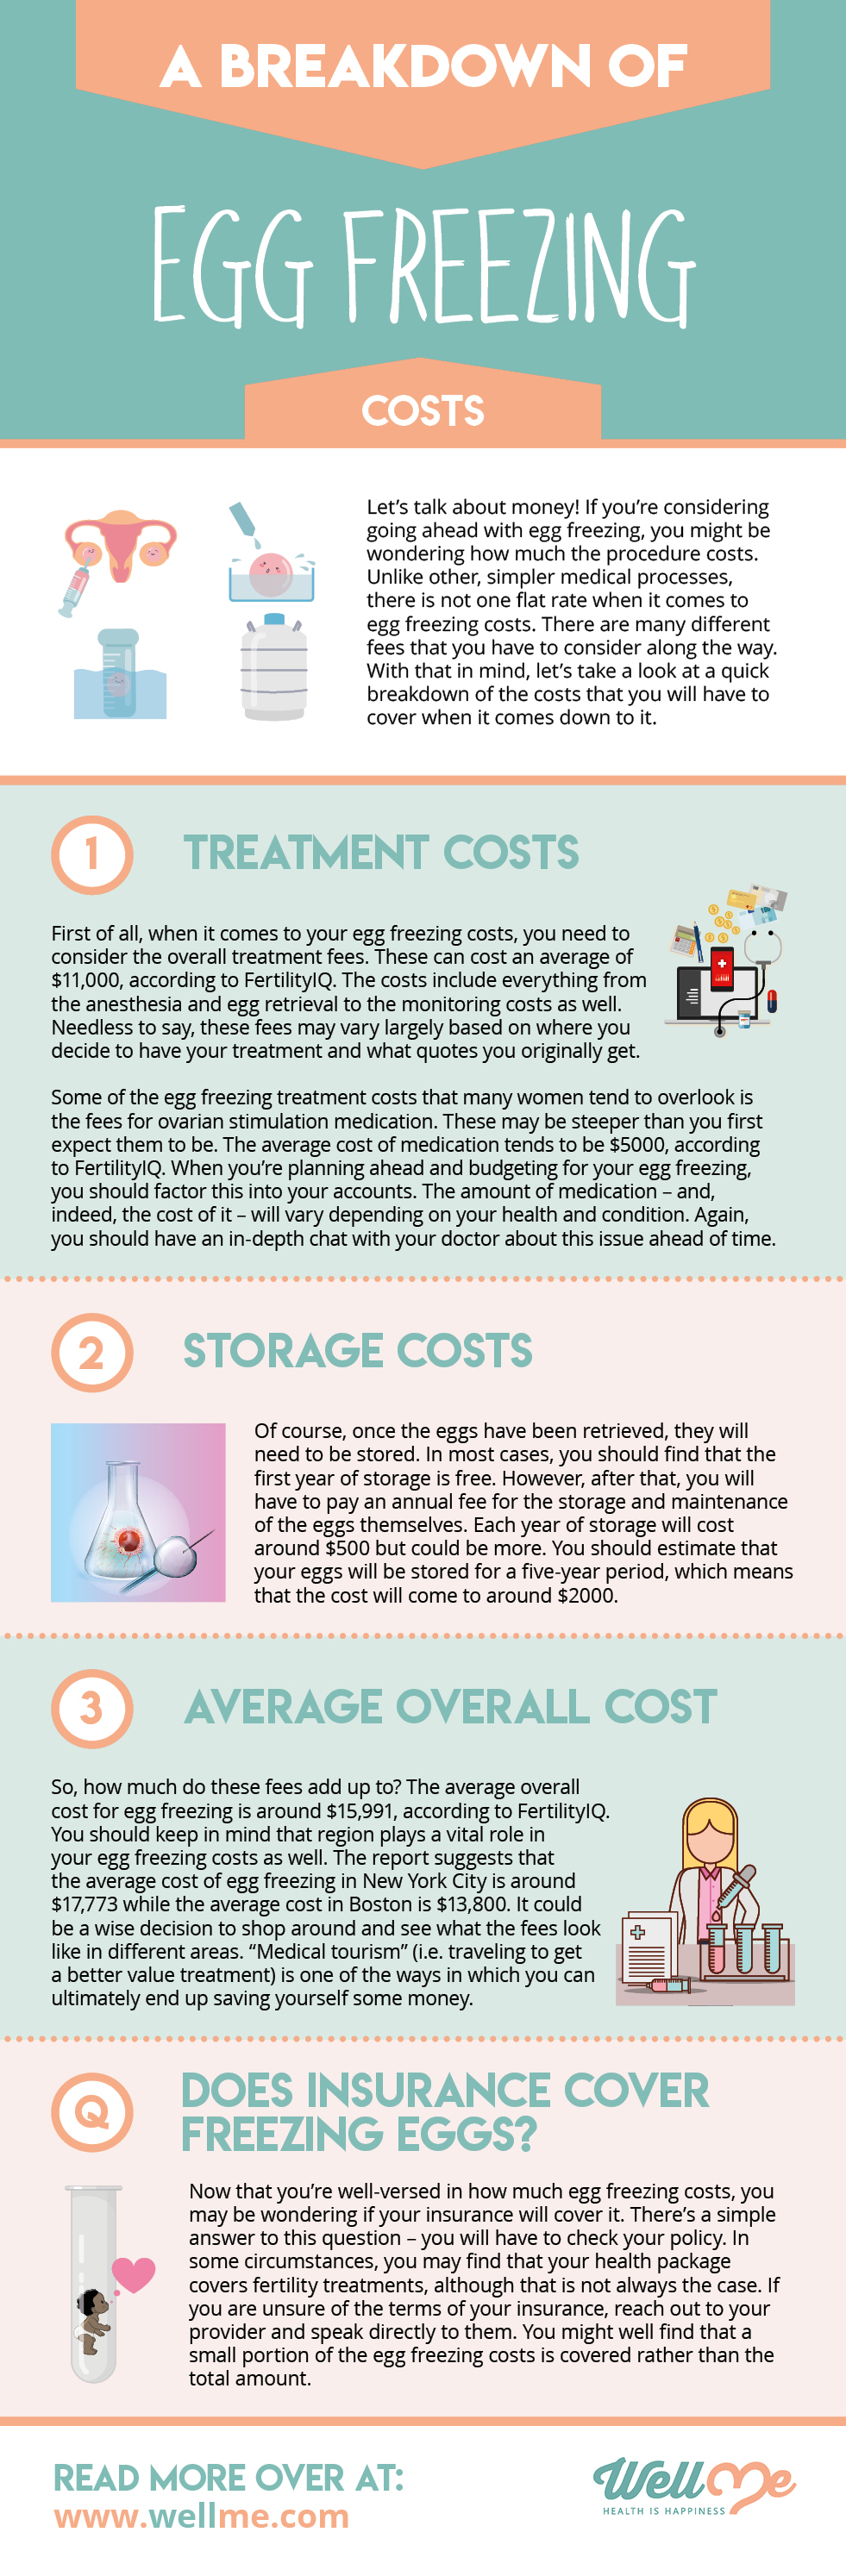 A Breakdown of Egg Freezing Costs infographic